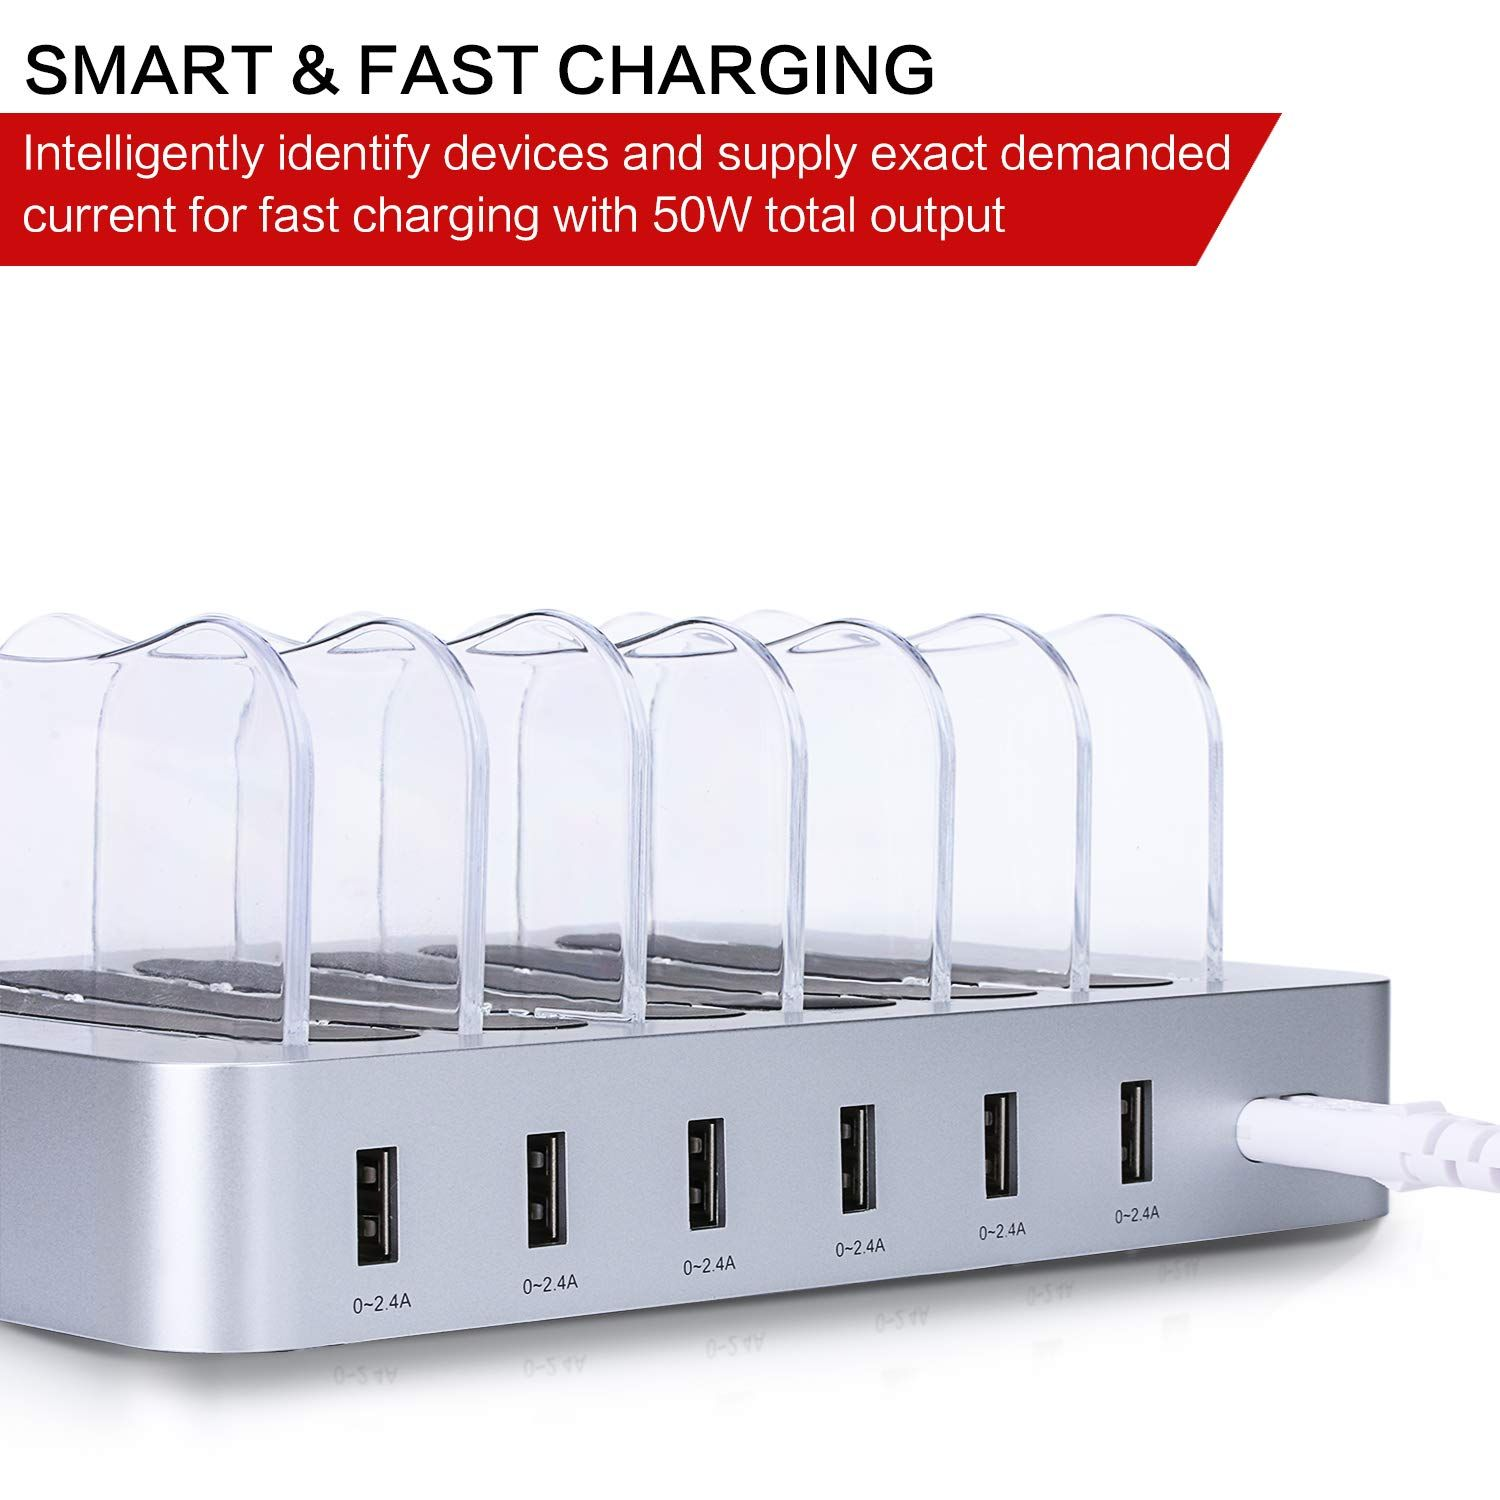 50W Fast Charging Stand with Smart Identification Technology Universal and Compact Charging Organizer for iPhone//iPad//Samsung//Tablet//Kindle and More 6 Ports USB Charging Station